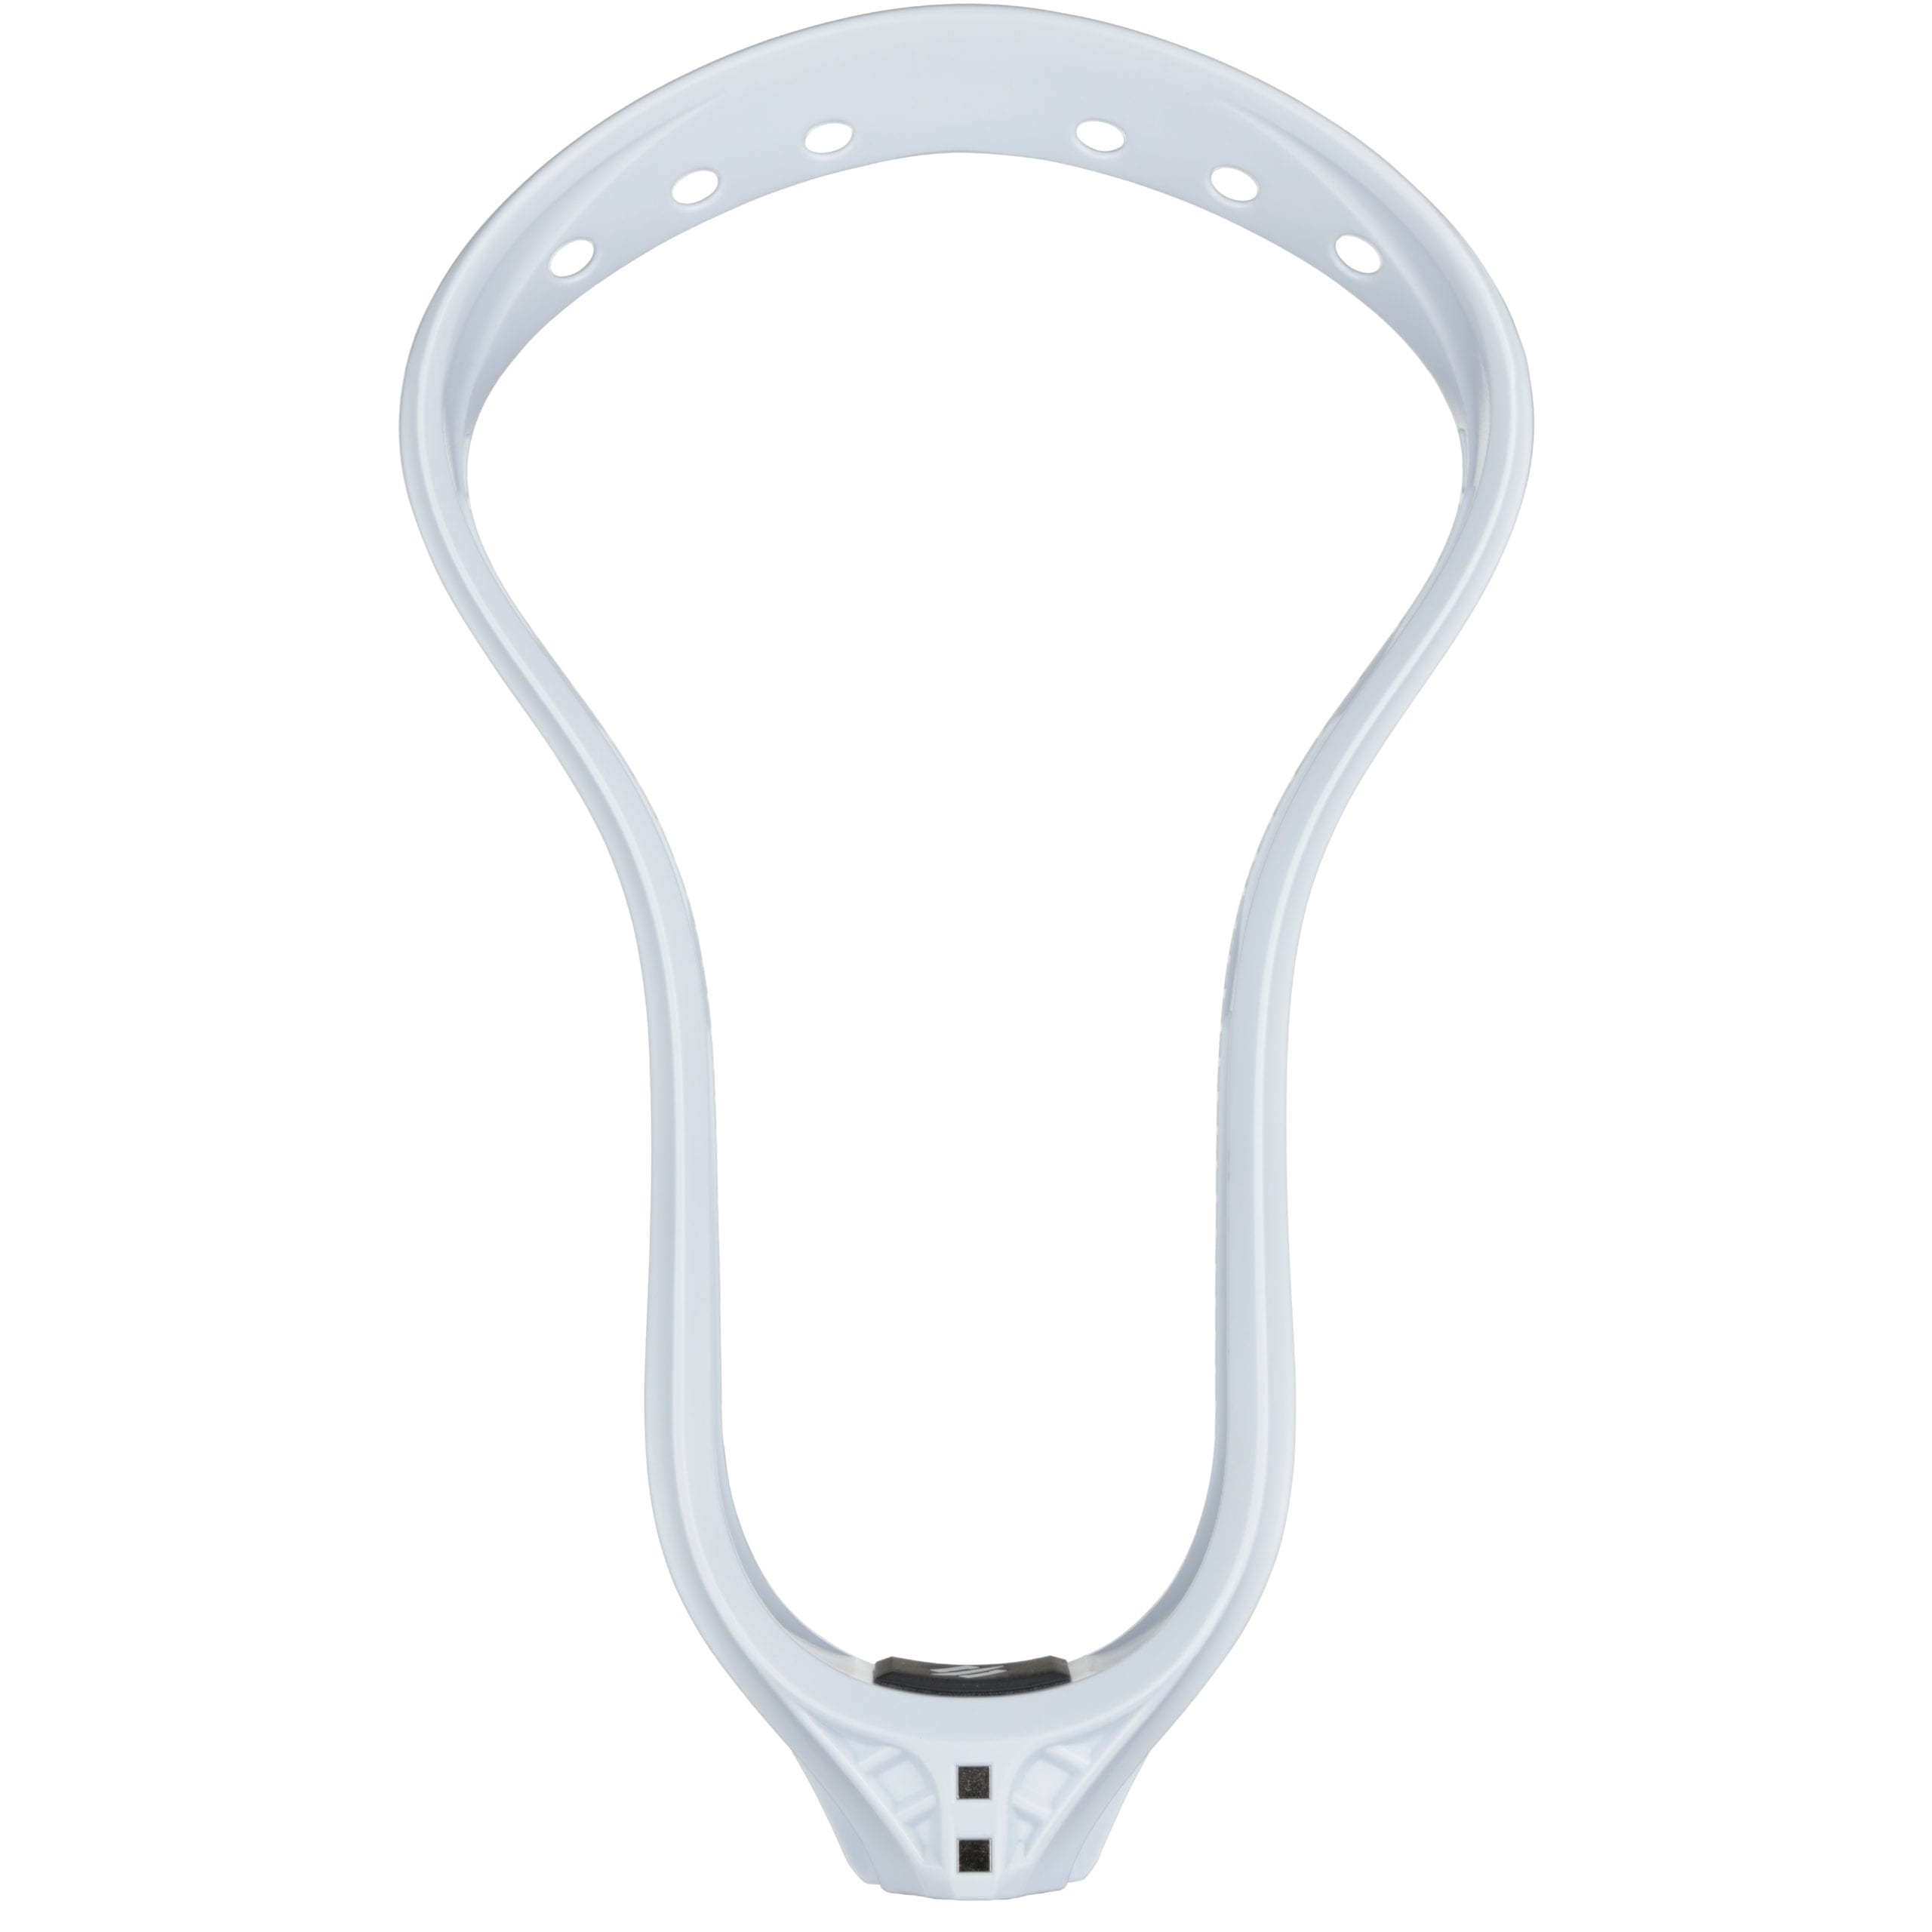 StringKing-Mark-2F-Stiff-Faceoff-Lacrosse-Head-White-Unstrung-Face-scaled-1.jpg